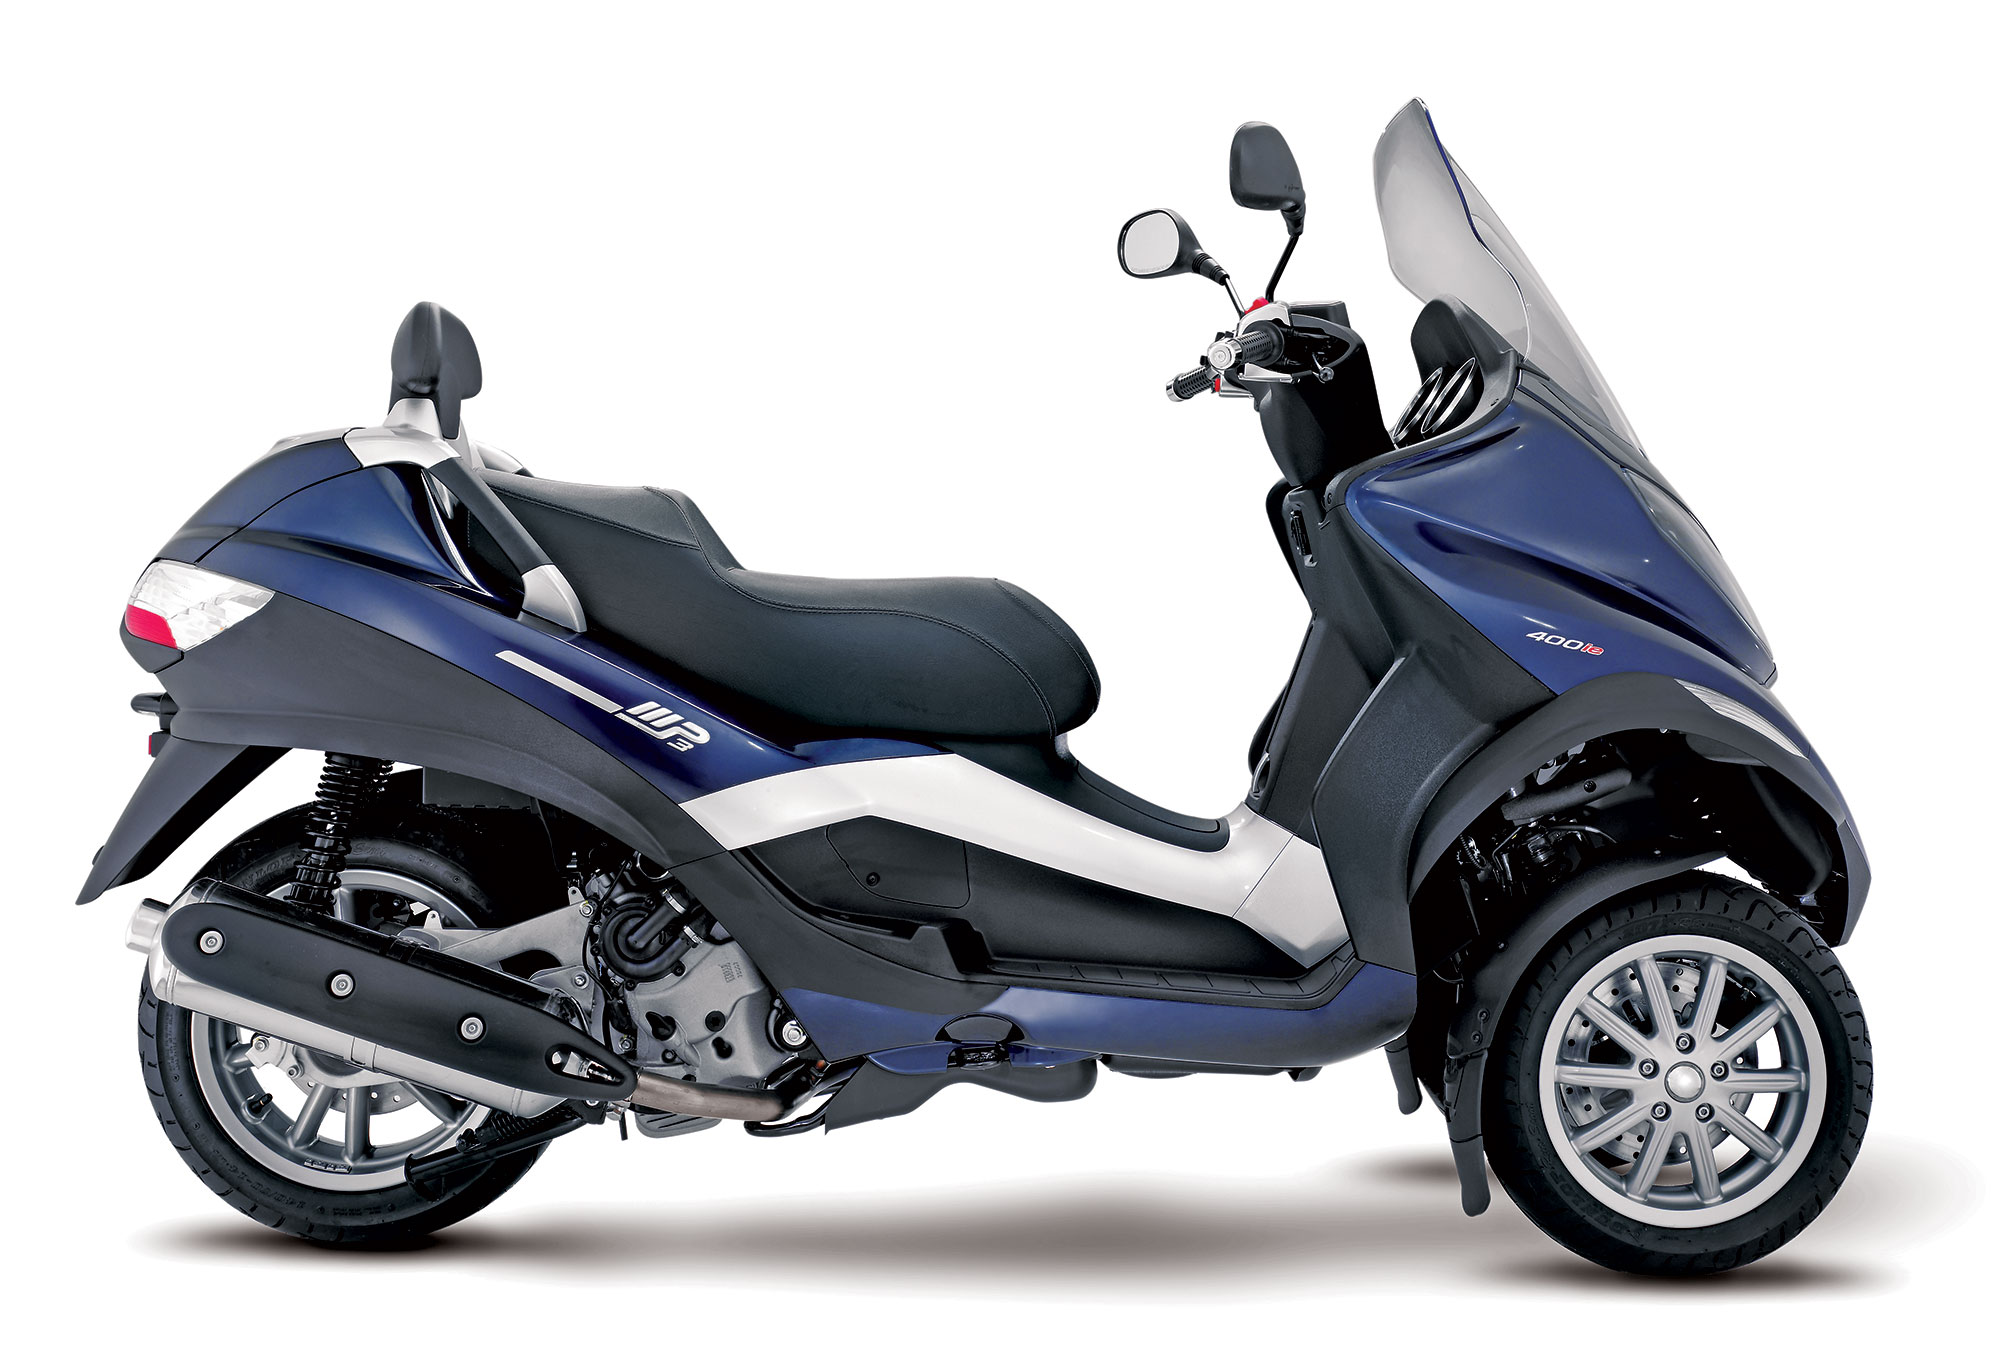 piaggio mp3 400 specs - 2012, 2013 - autoevolution